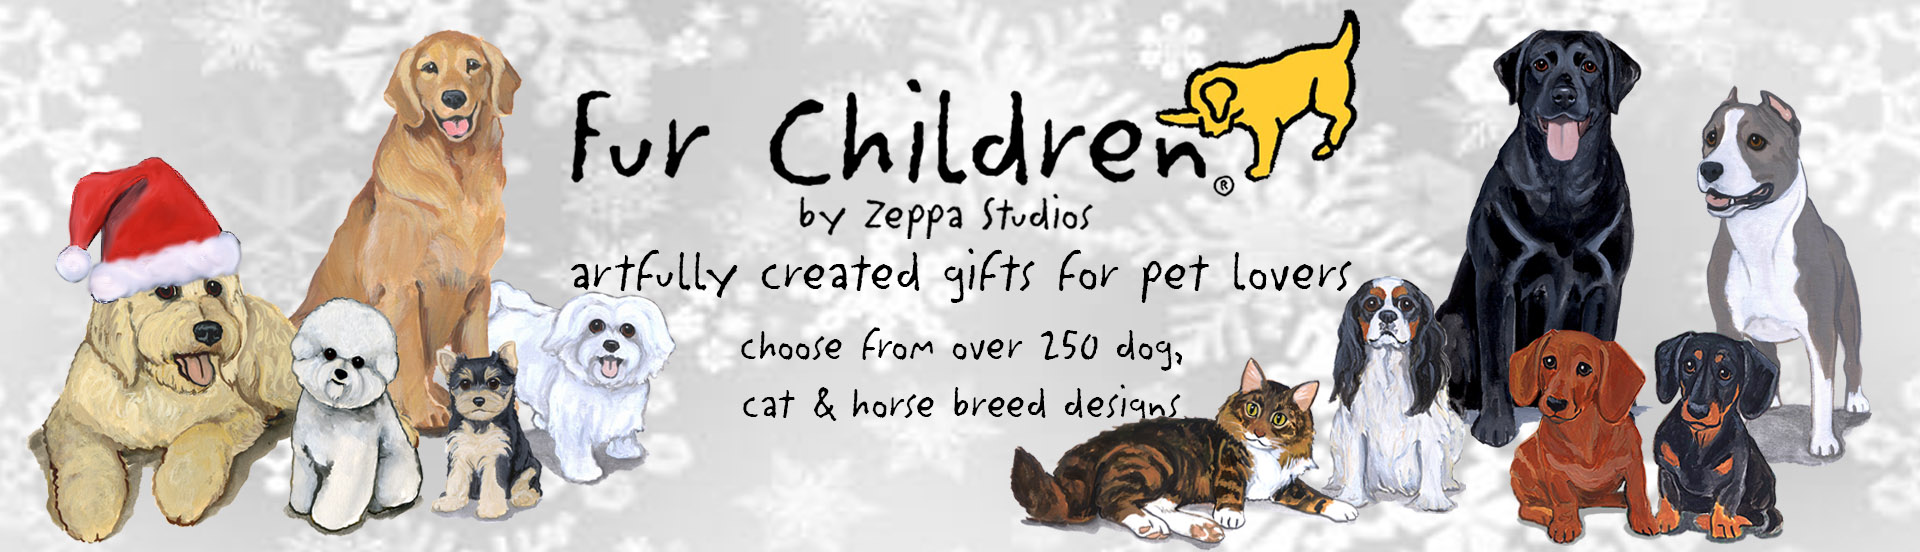 Artfully Created Gifts for Pet Lovers